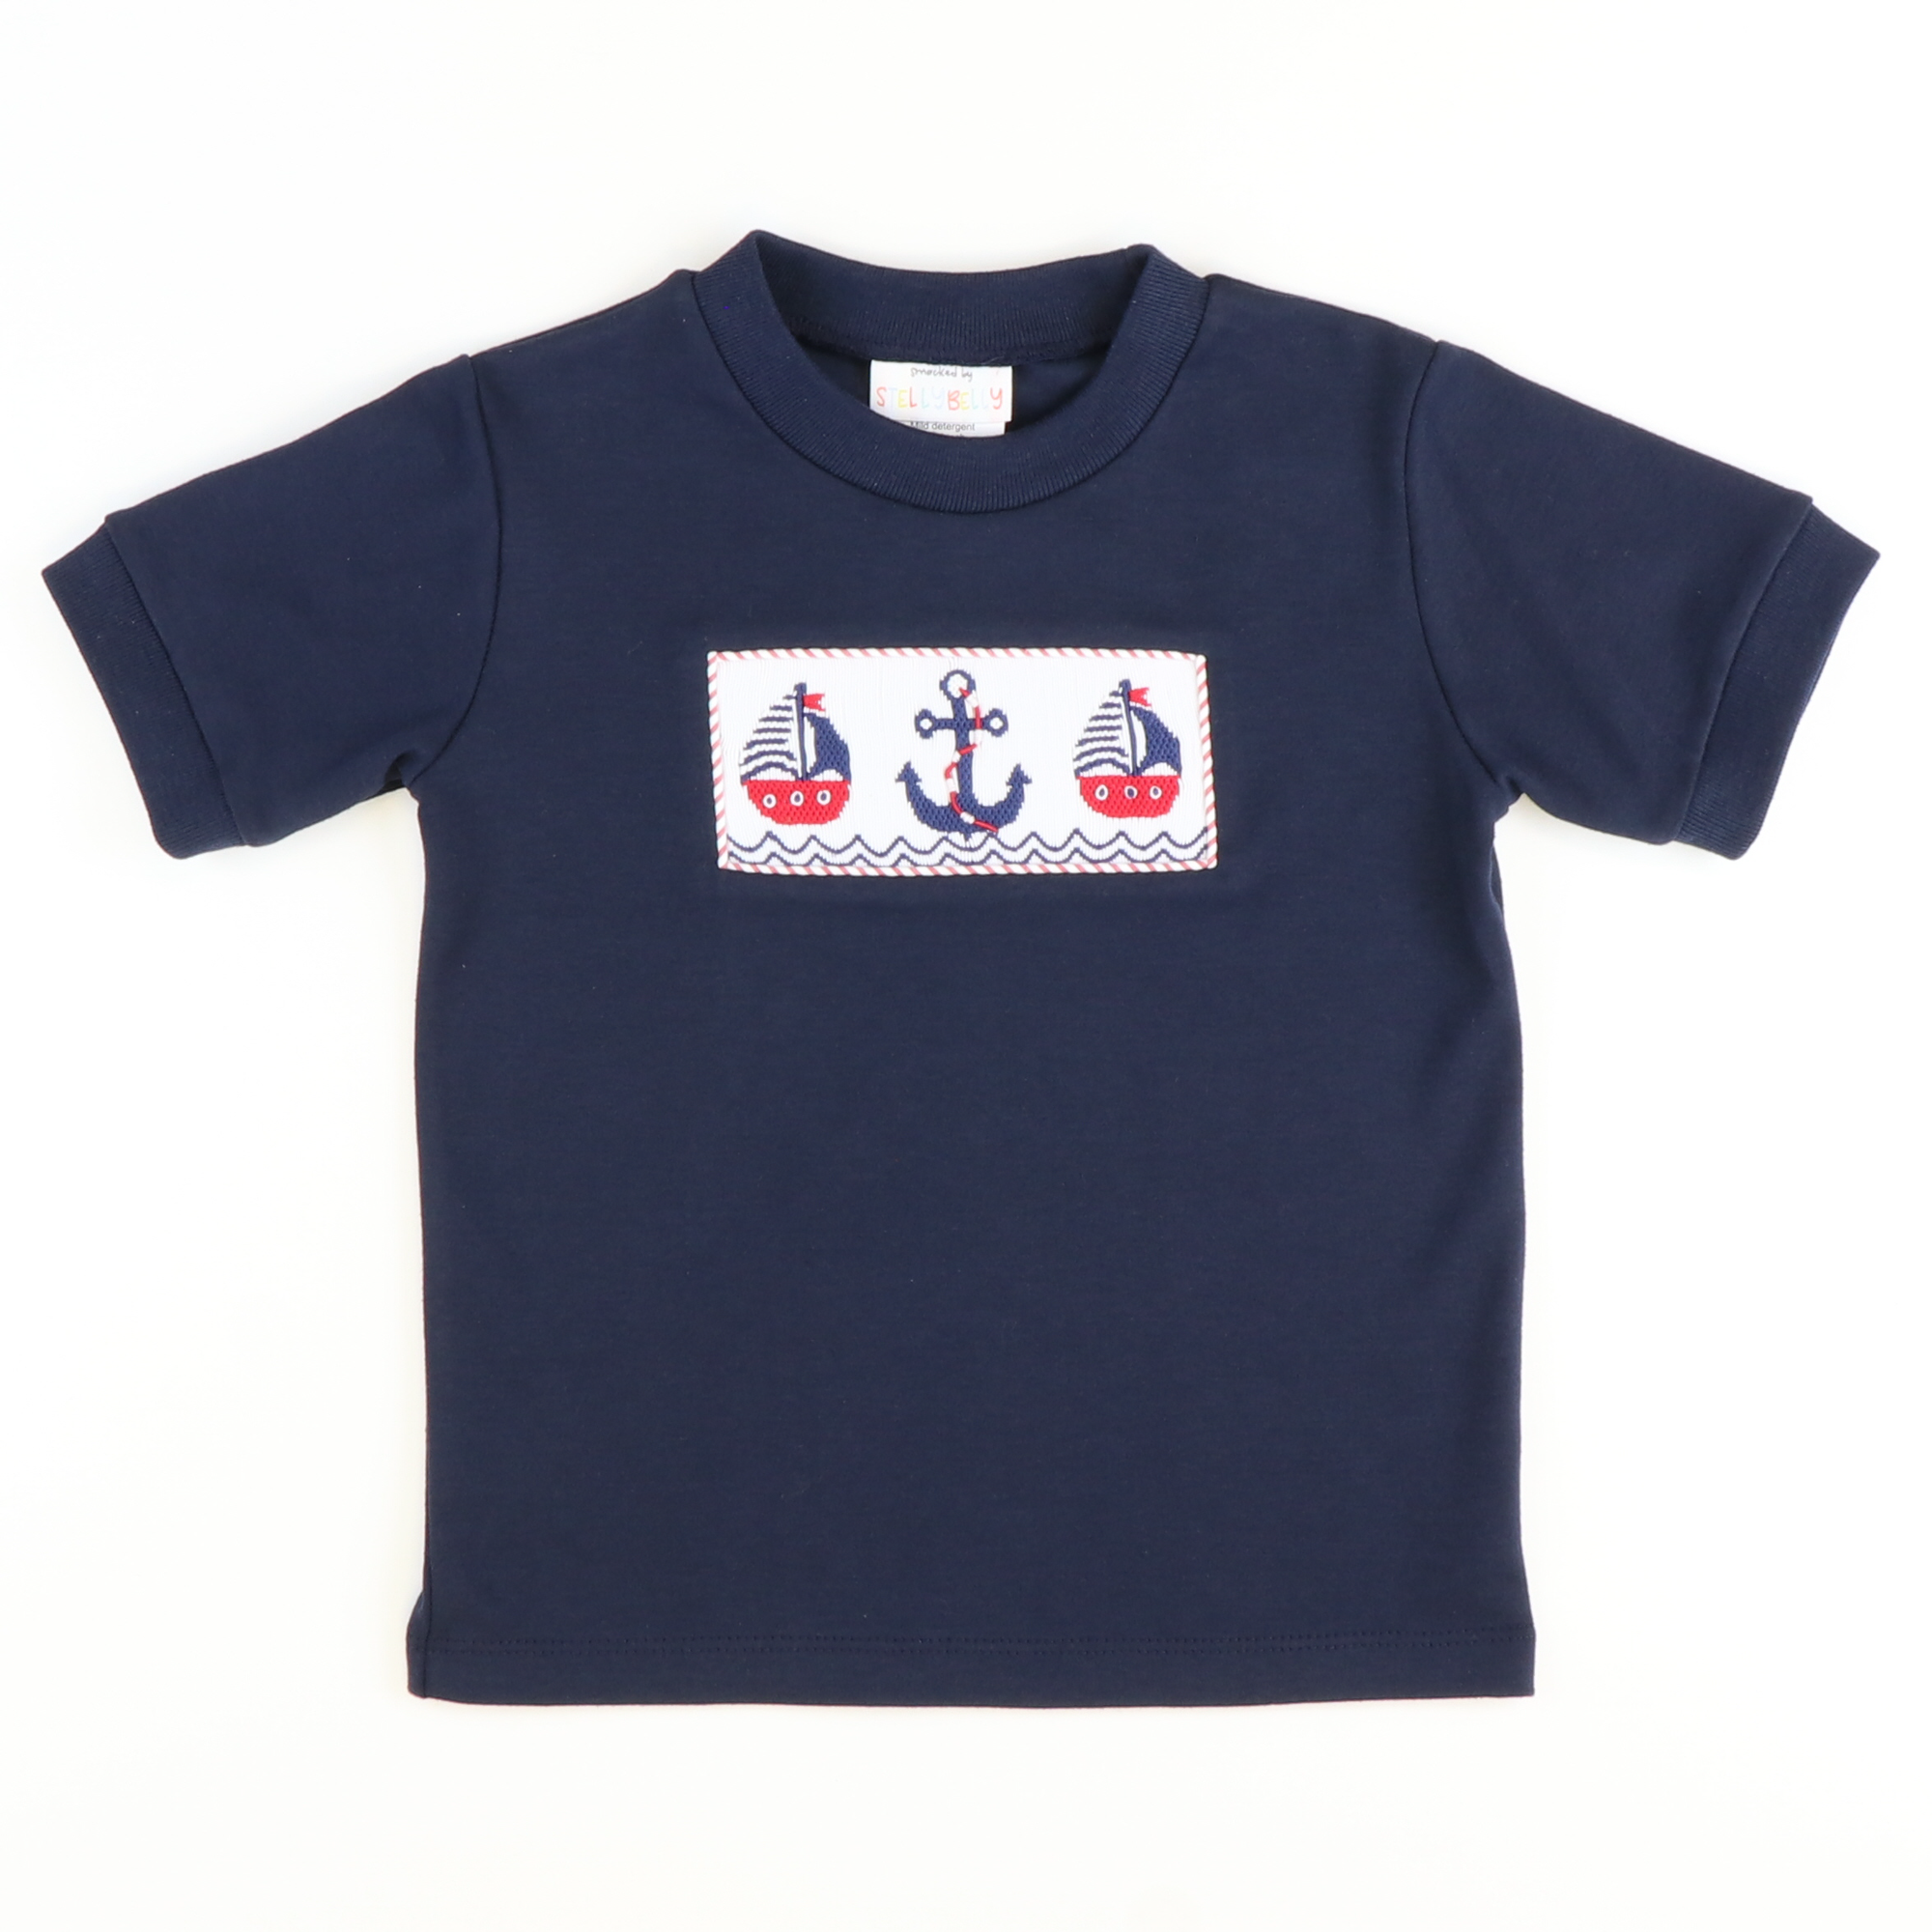 Smocked Sailboats & Anchor Short Sleeve Knit Shirt - Navy Blue